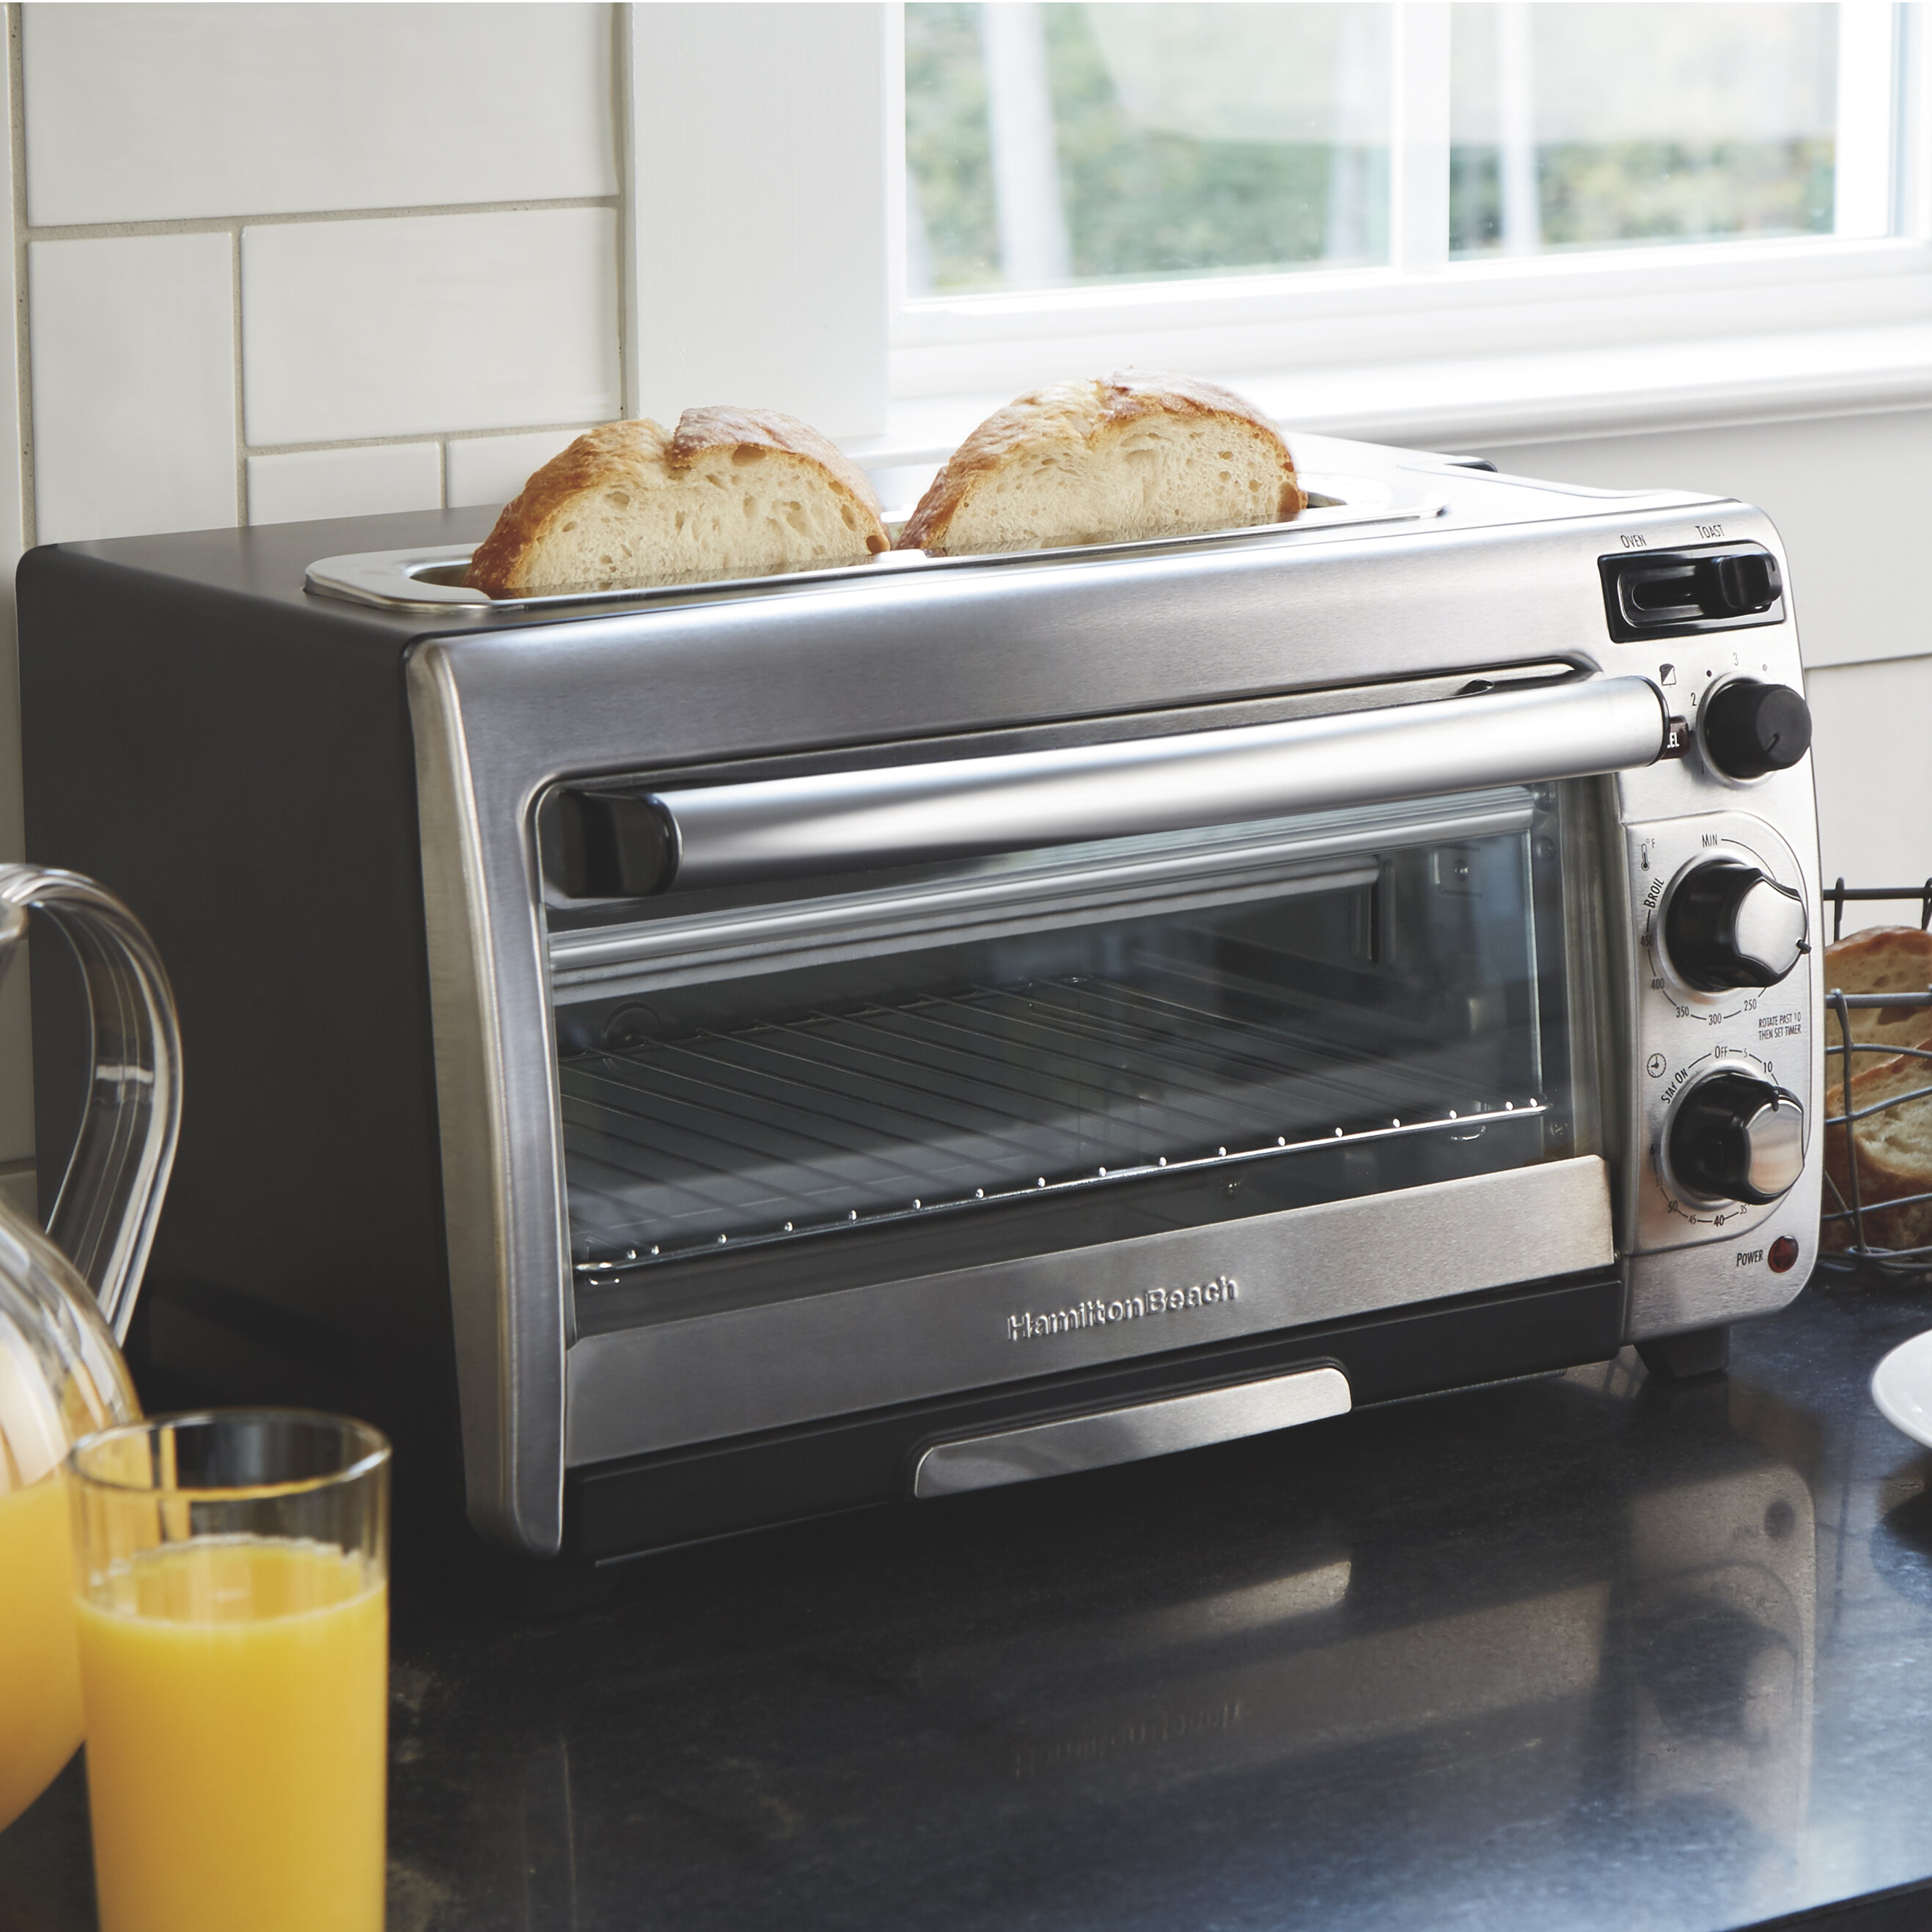 for prod toaster countertop hei p wid oven sale kenmore convection spin qlt digital elite